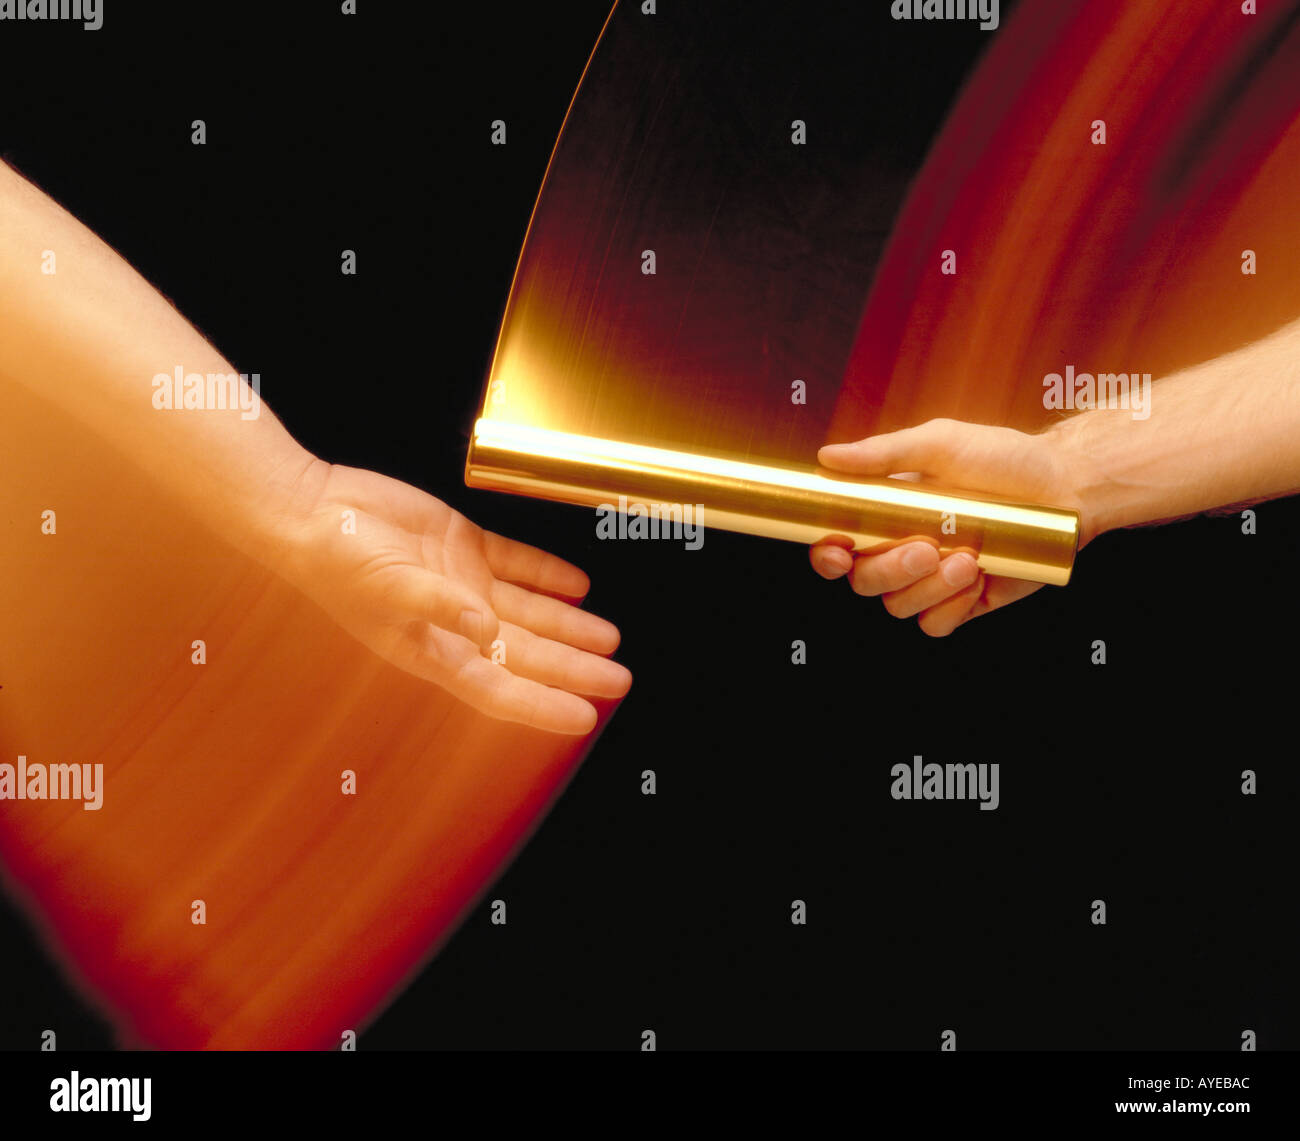 athletes handing off gold baton in motion - Stock Image